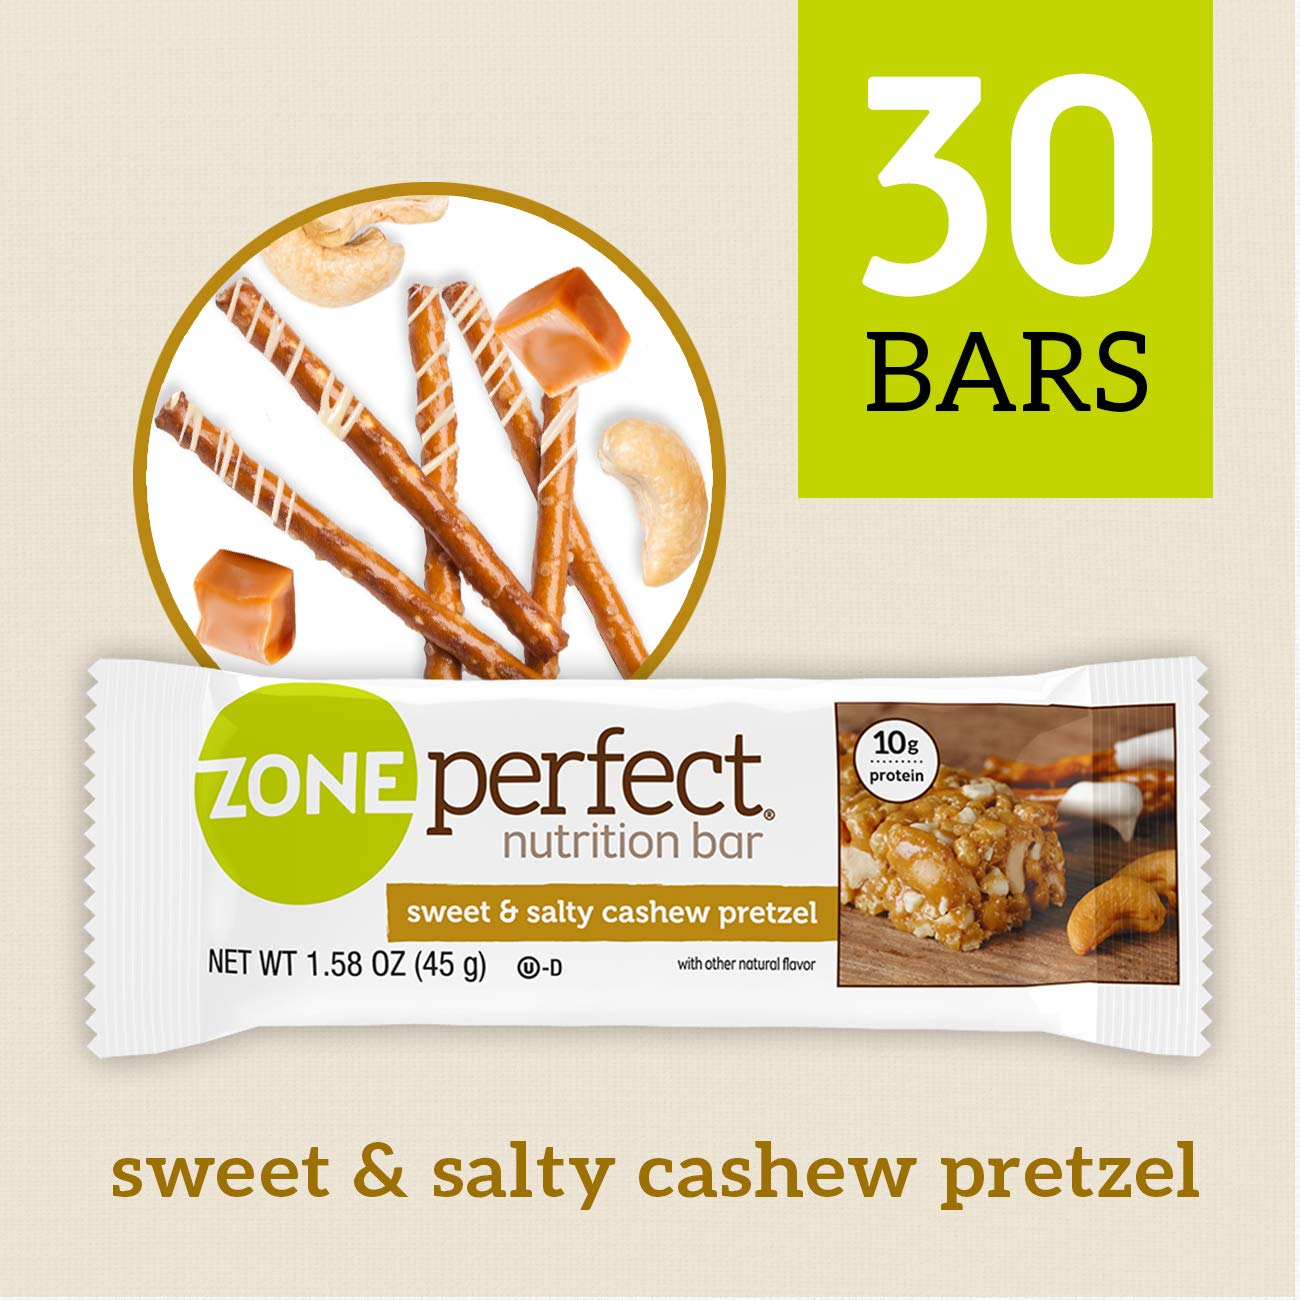 ZonePerfect Nutrition Snack Bars, Sweet & Salty Cashew Pretzel, 10g high-quality protein, 1.58 oz, 30 count